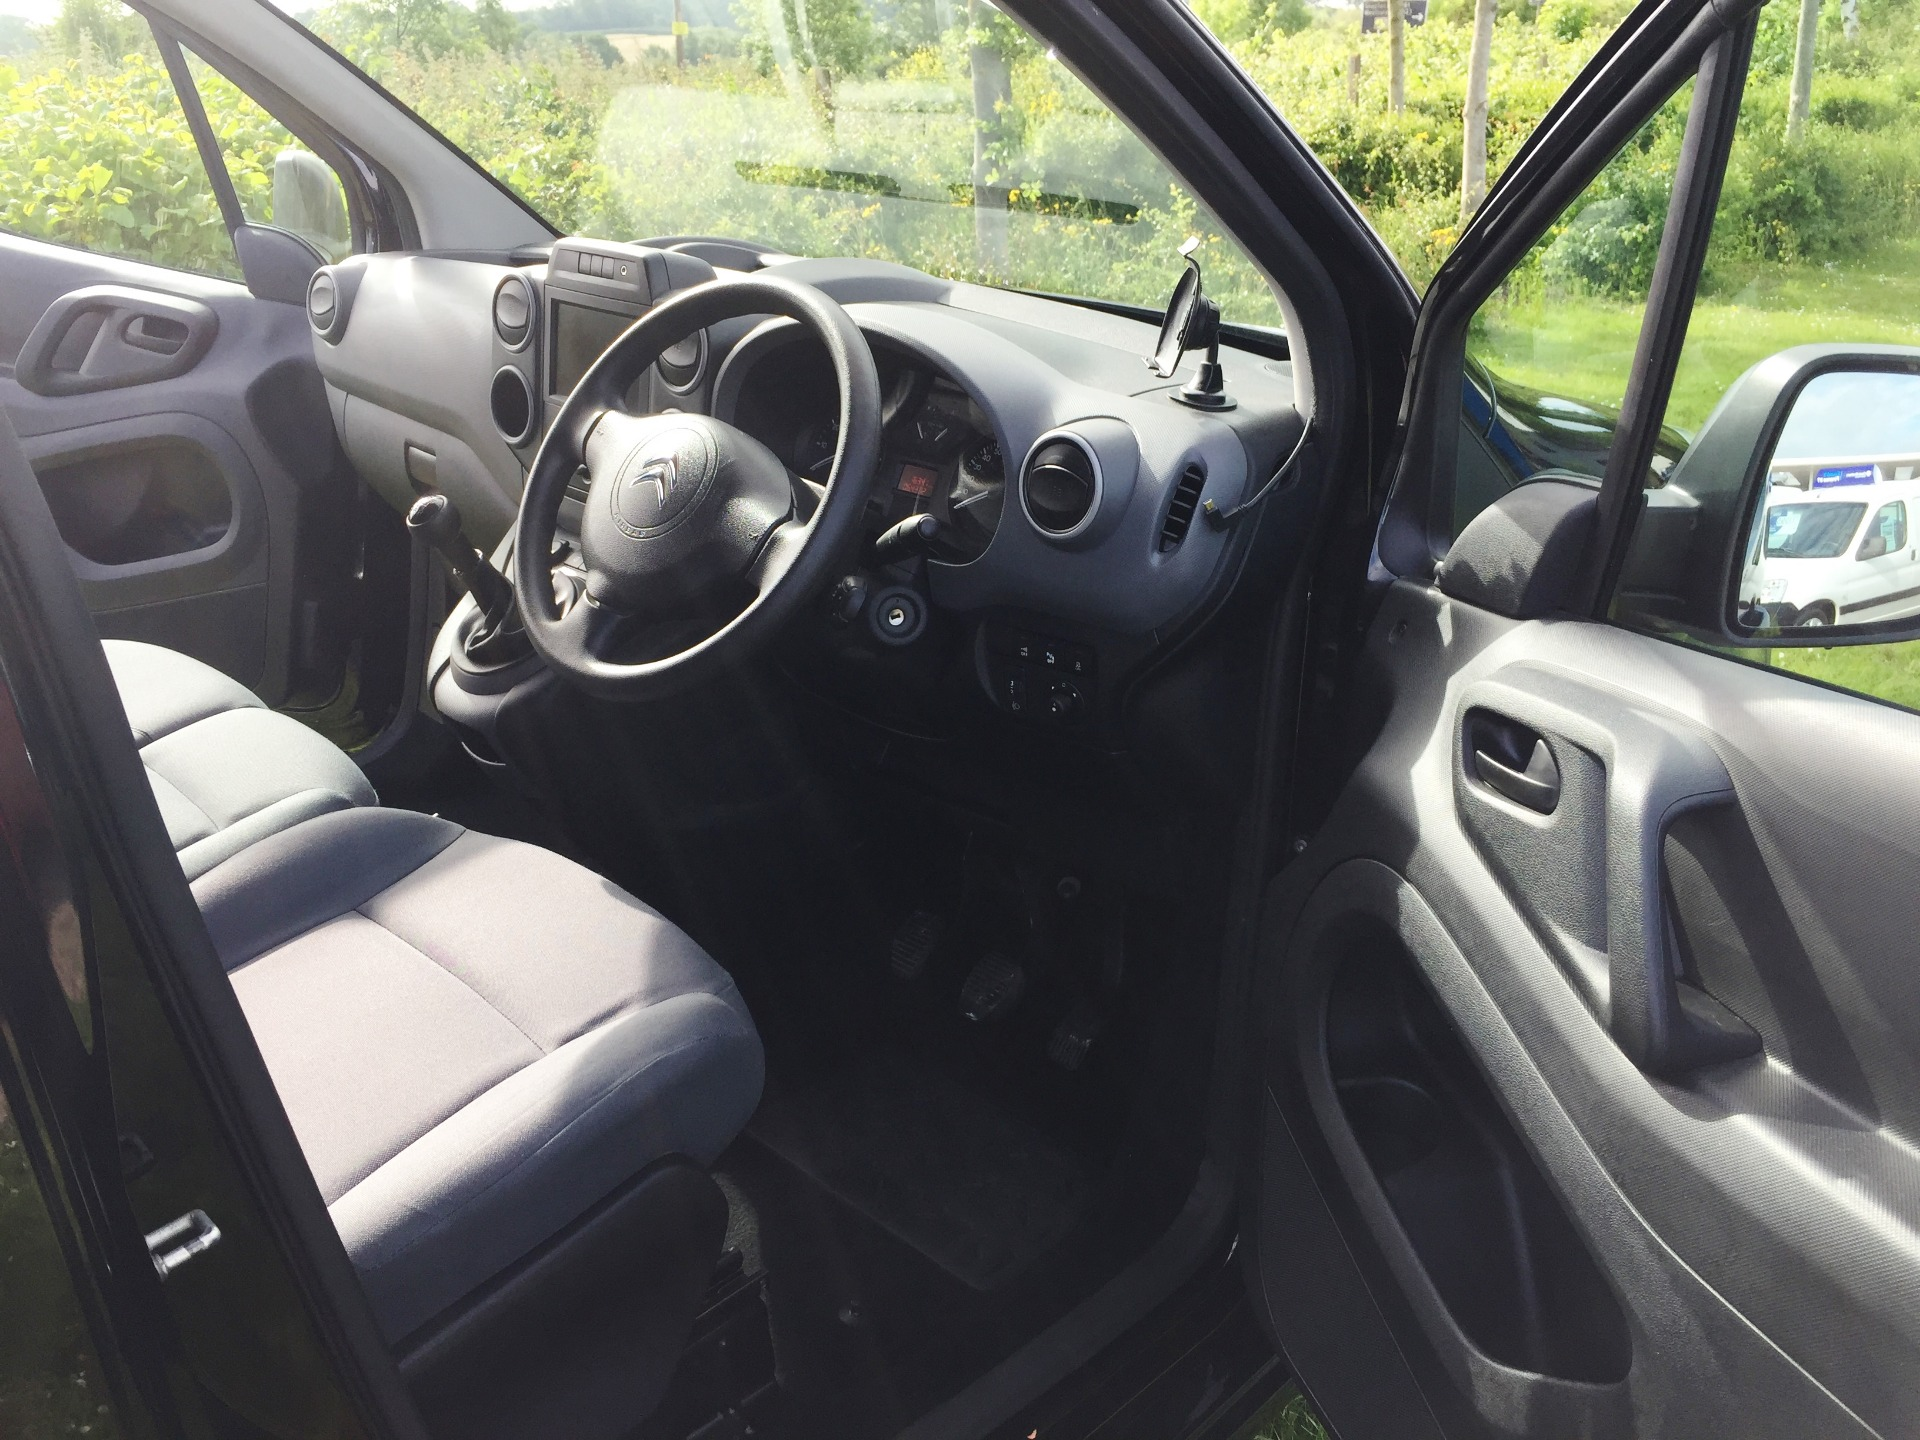 Used CITROEN BERLINGO 625 ENTERPRISE L1 HDI , BLACK, 1 6